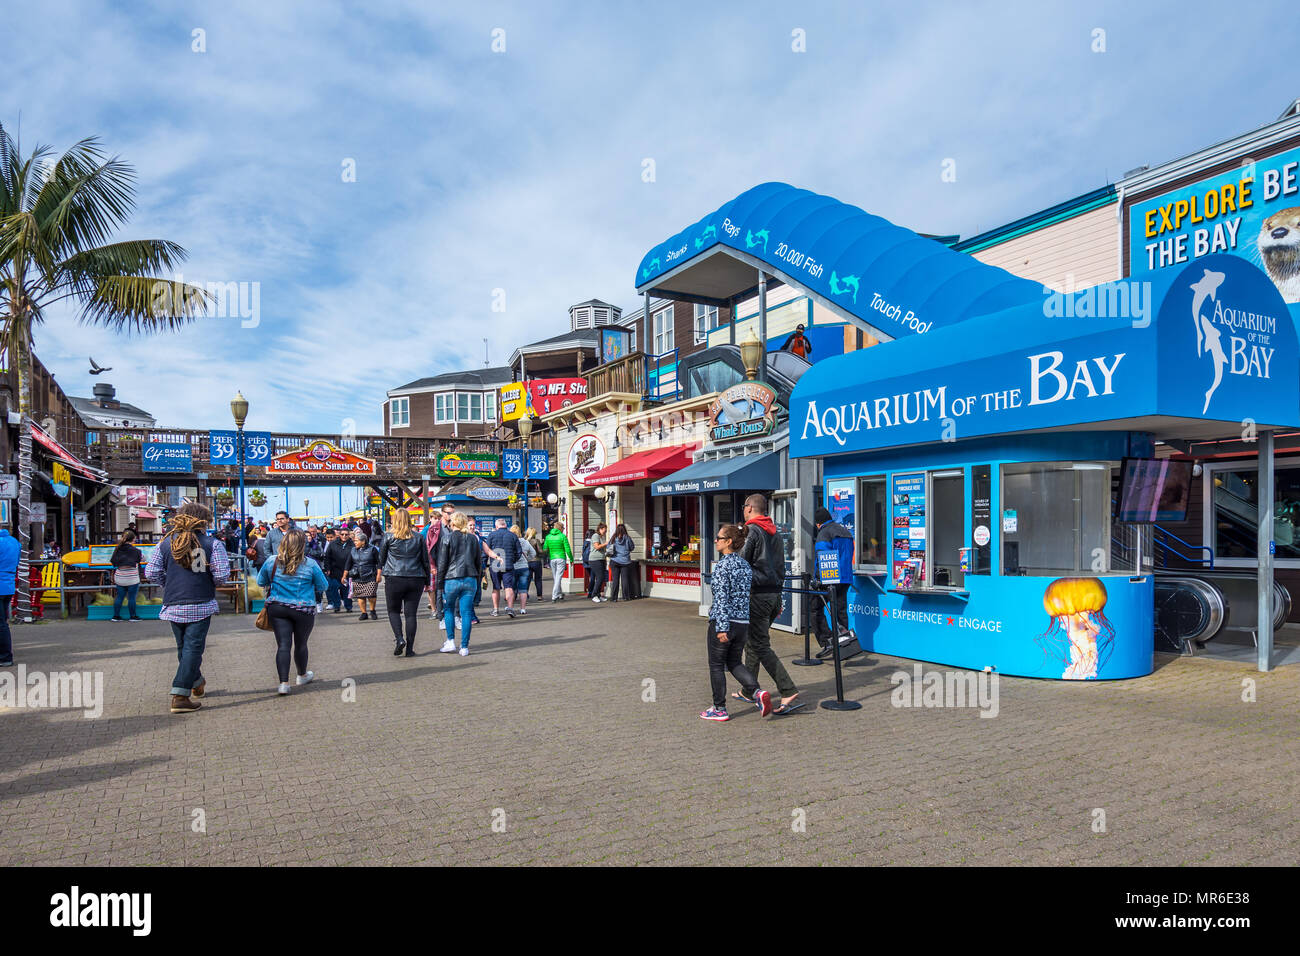 Shops, boutiques and cafes on Fisherman's Wharf, San Francisco, CA, USA. - Stock Image